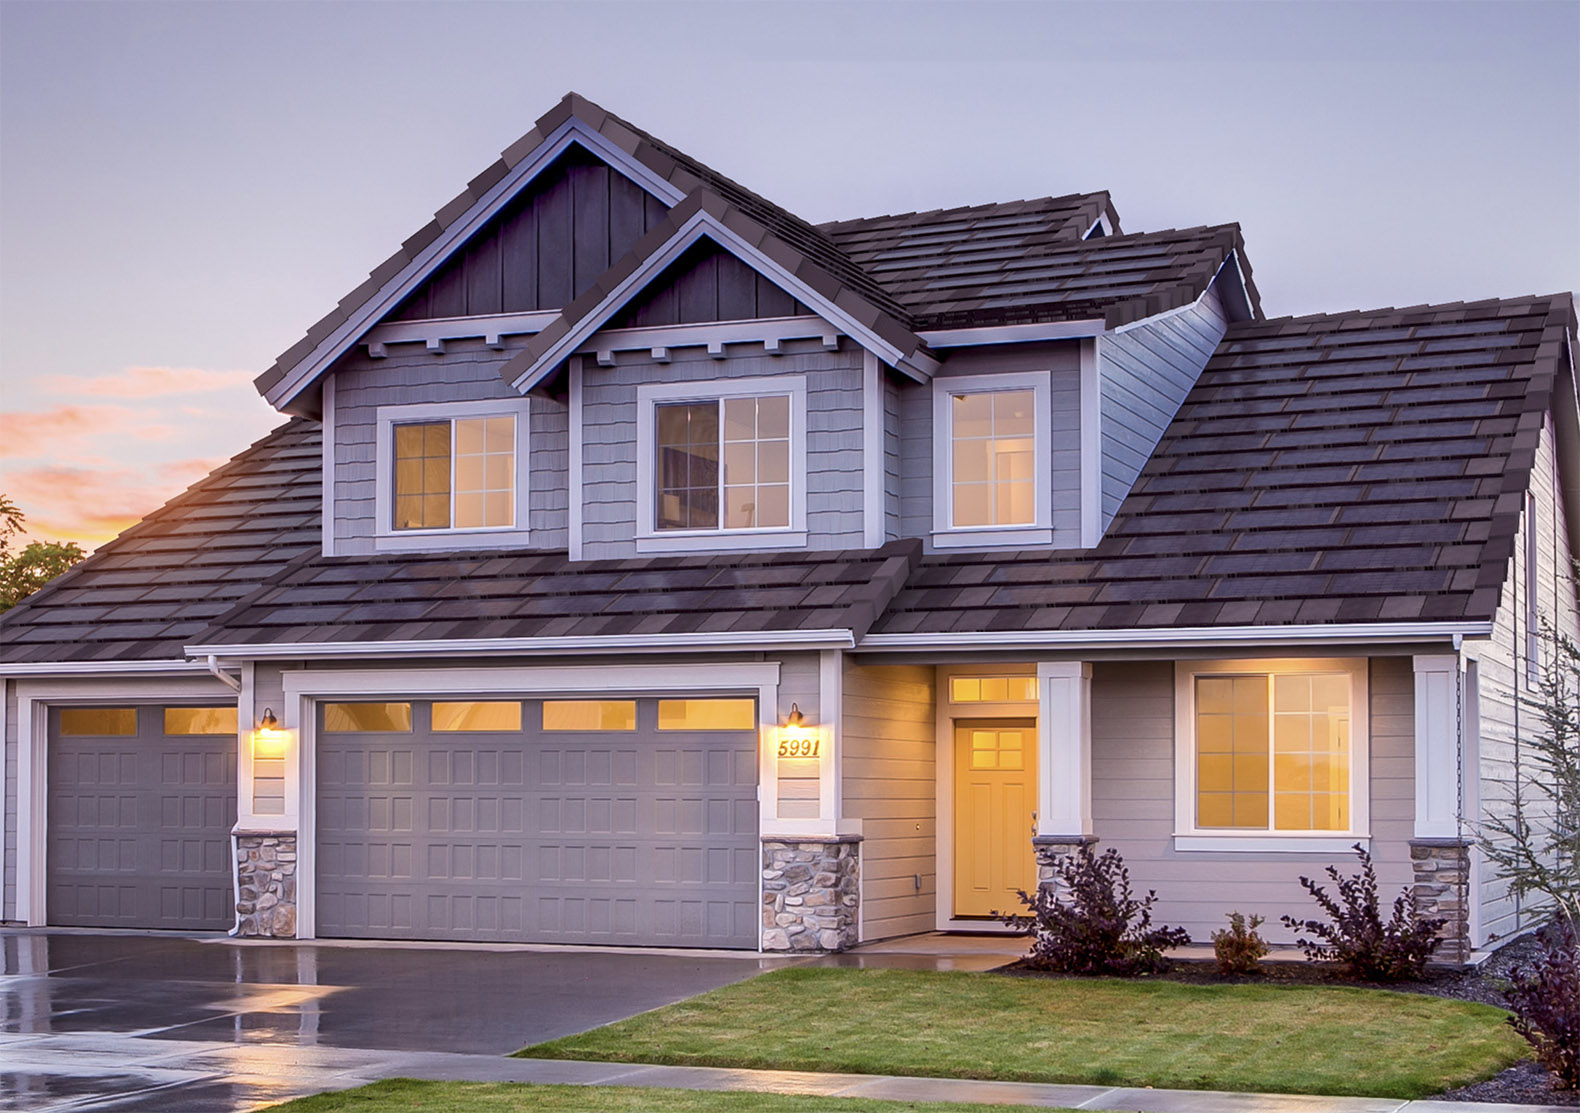 New 3 in 1 Roof solar tiles power your house for half the price of a Tesla roof